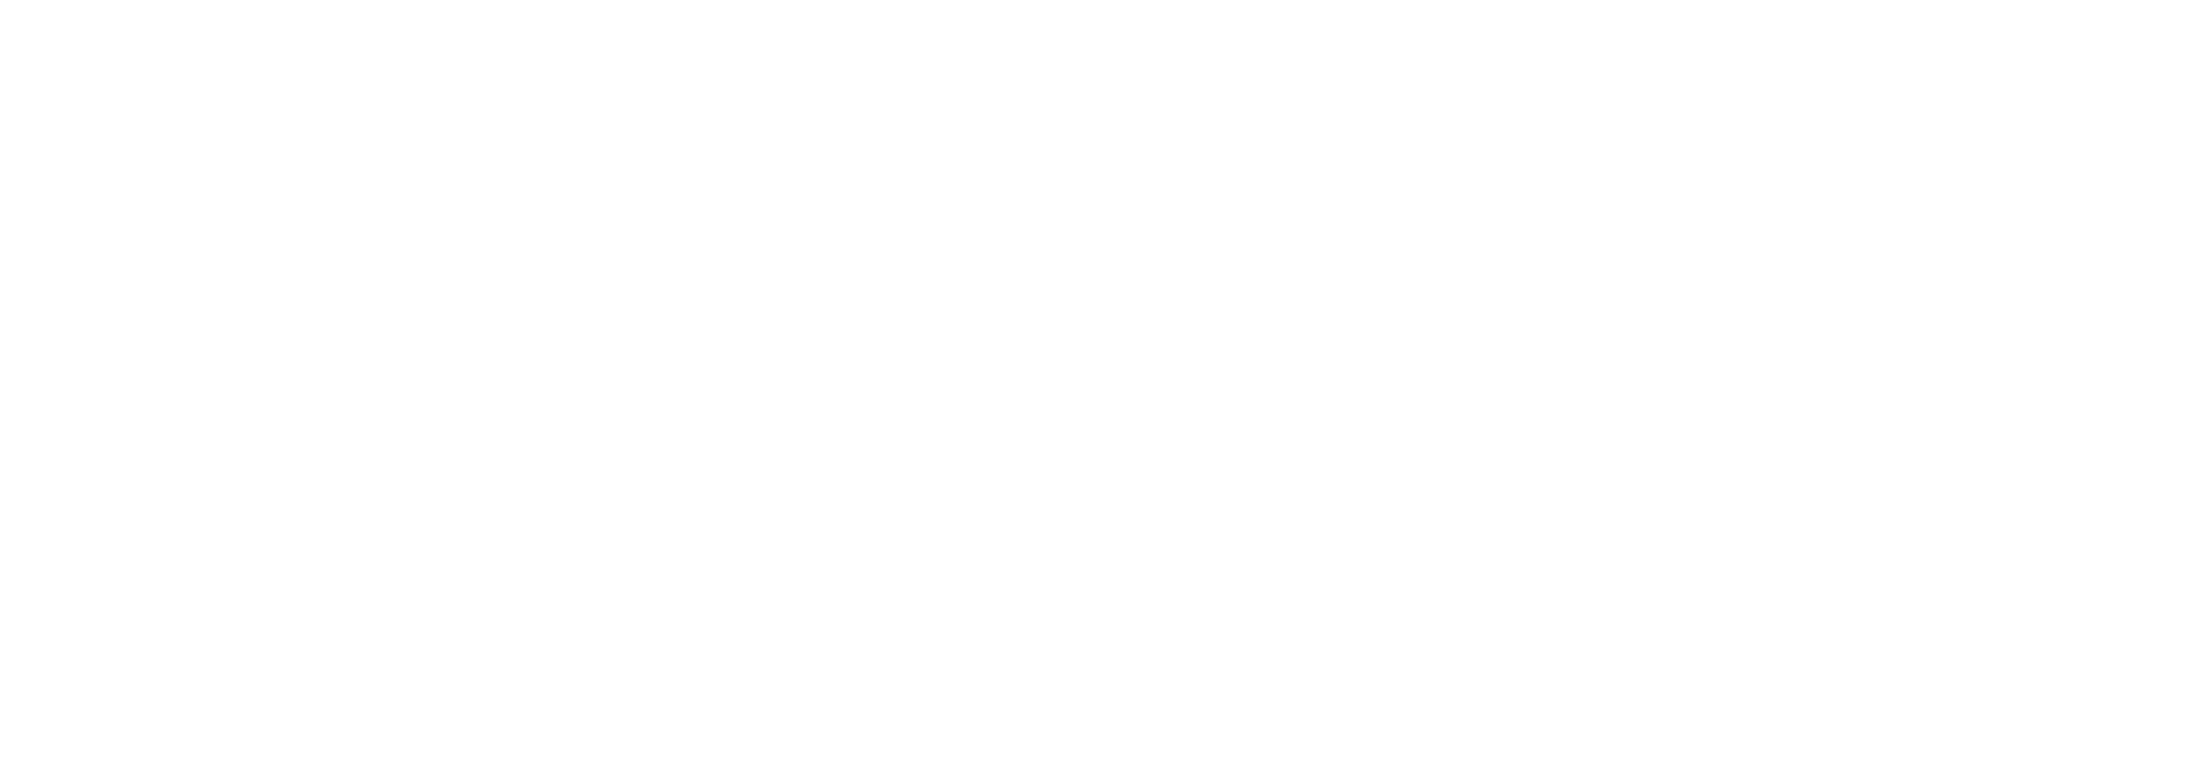 The Trial Lawyer Magazine Logo with white text